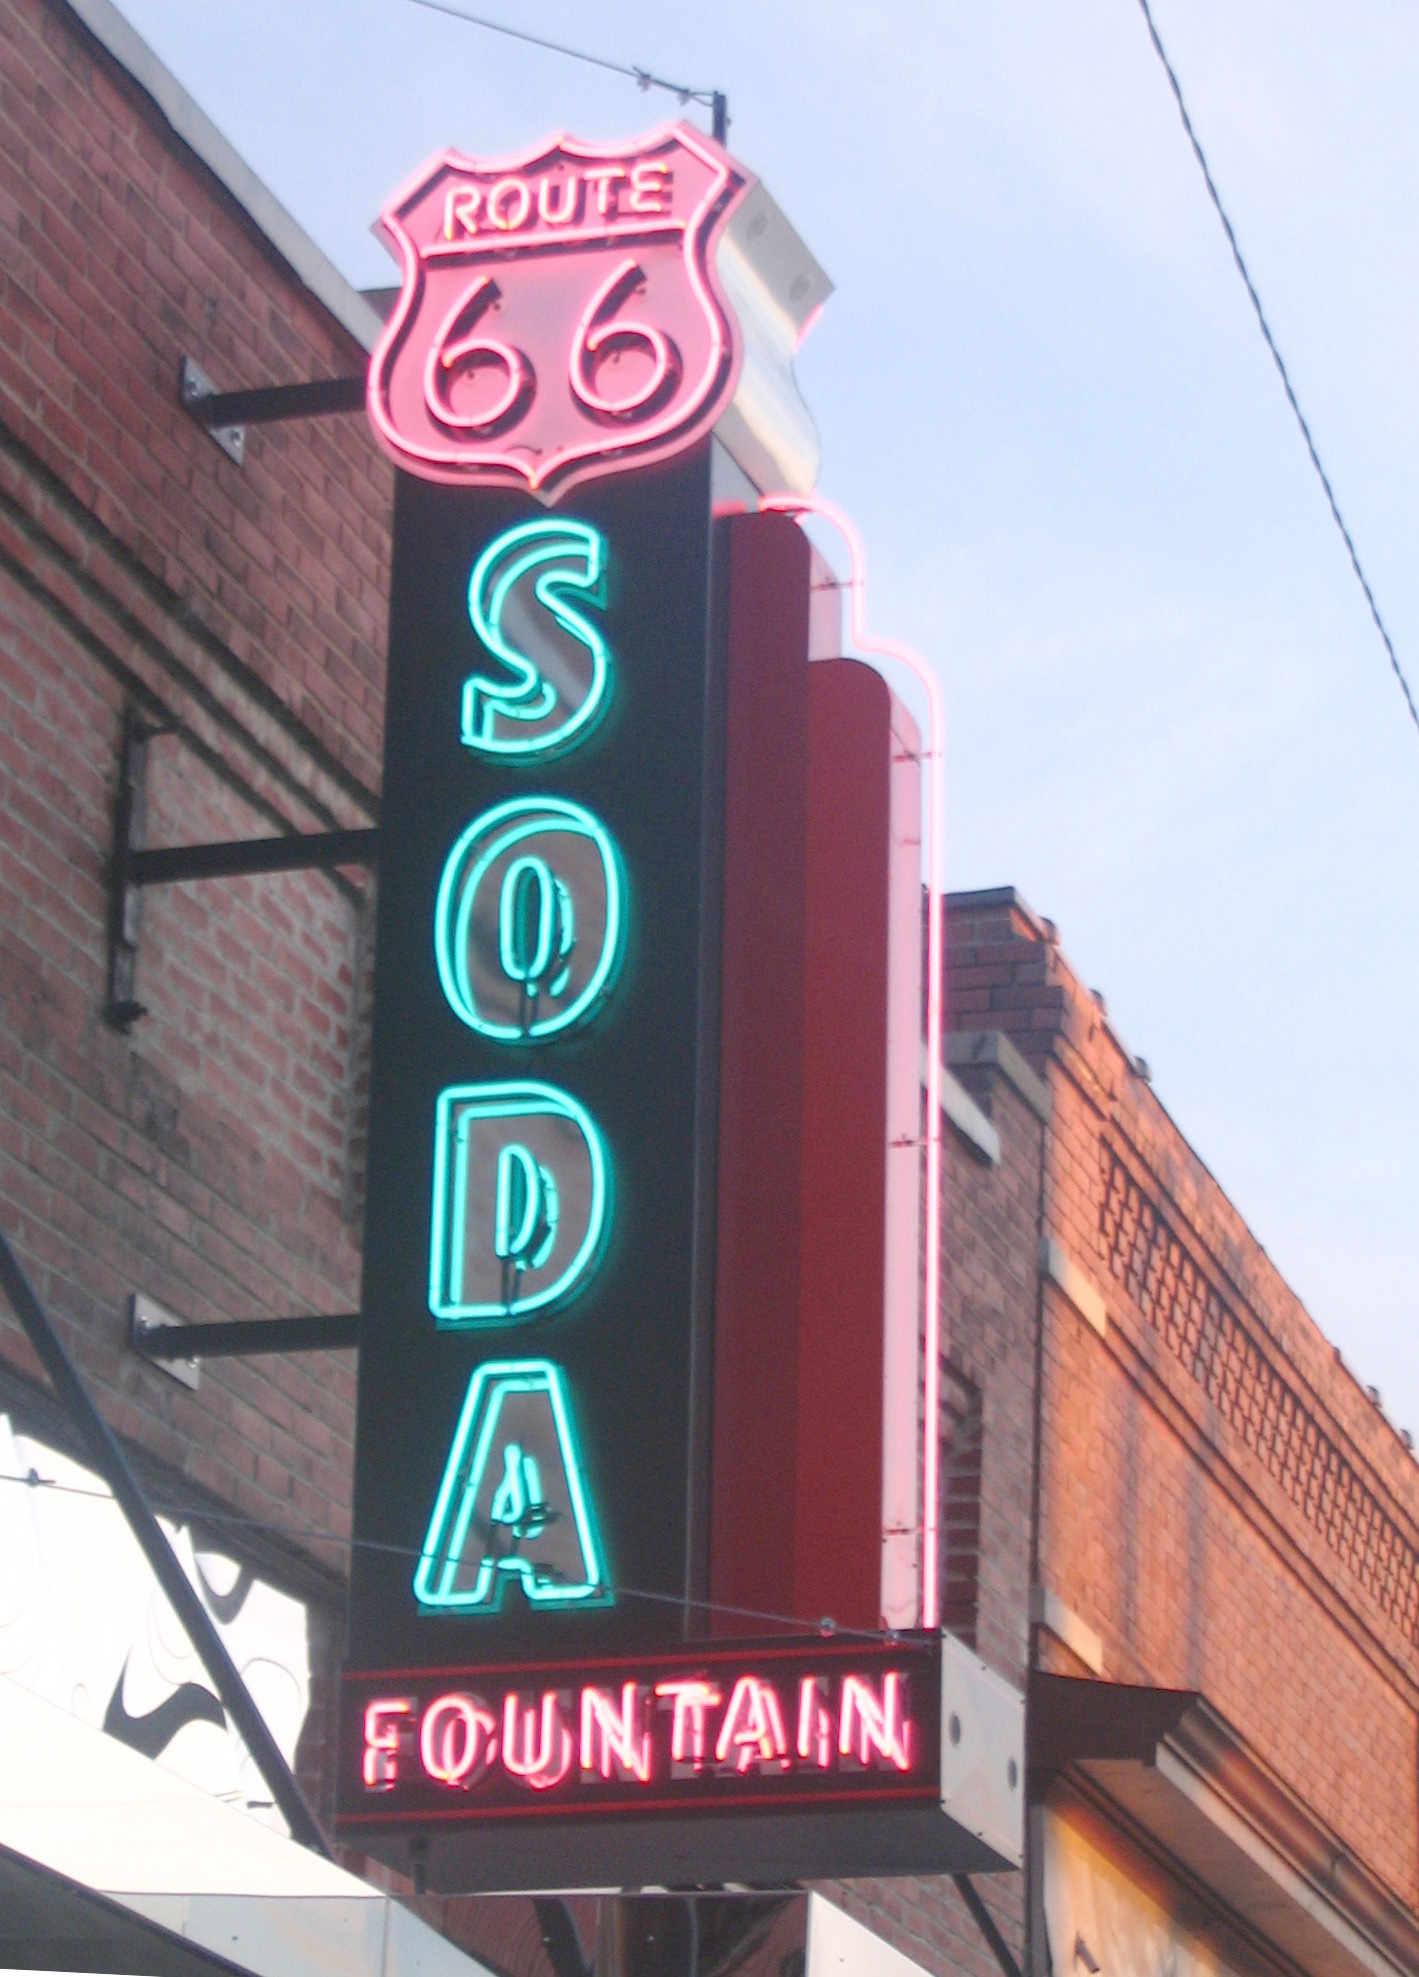 Soda fountain